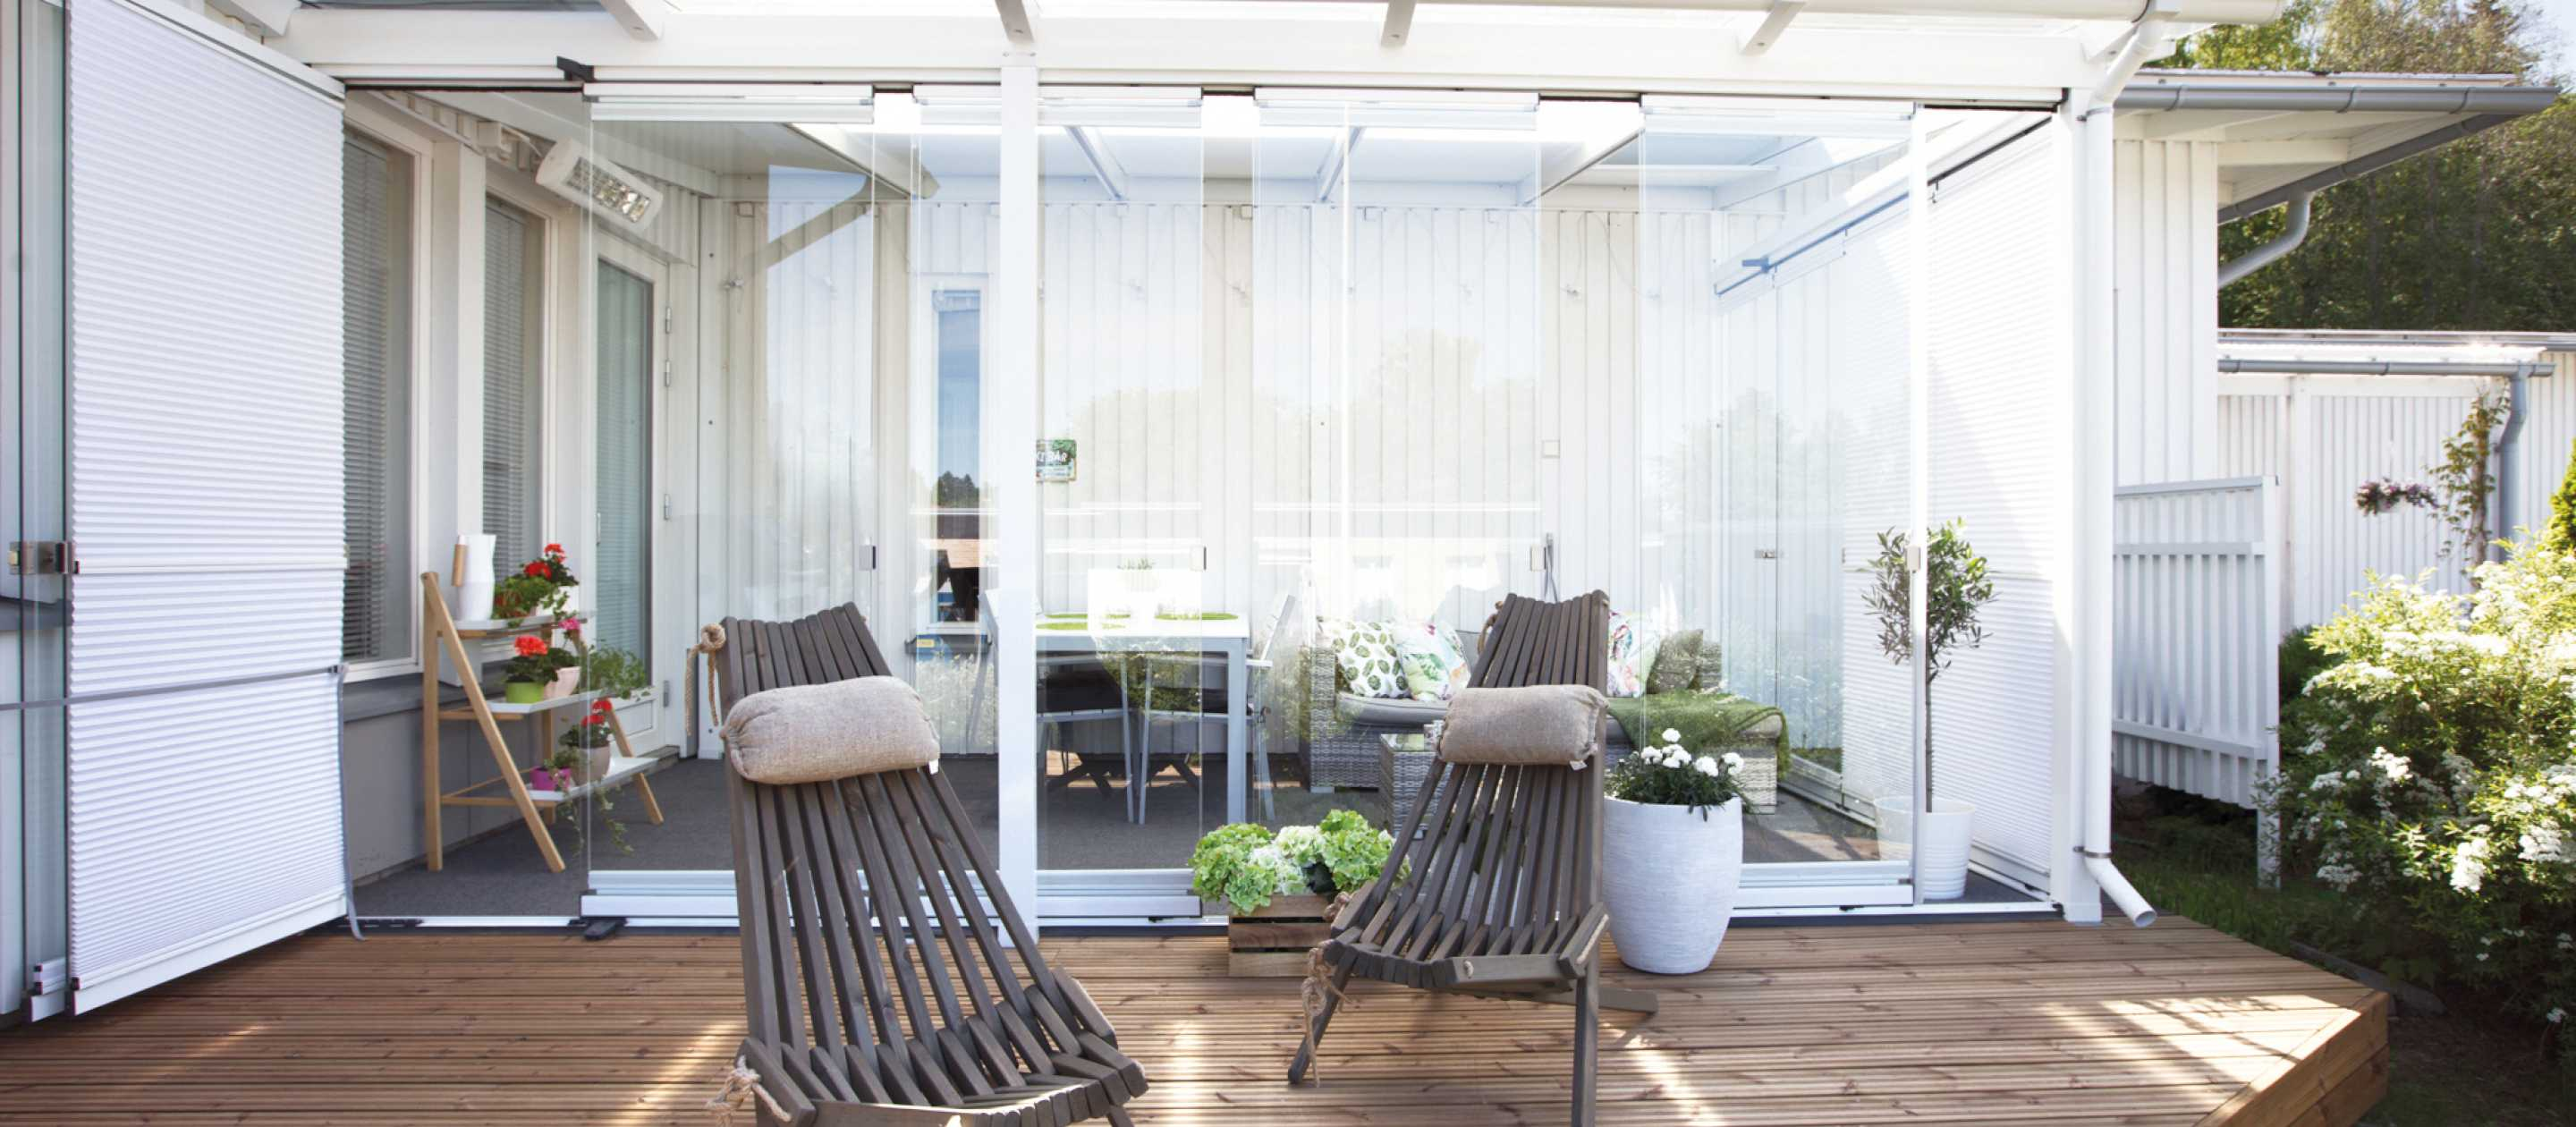 sunrooms, solarium, three season room, four season sunroom, enclosure, patio enclosures, patio, outdoor patios